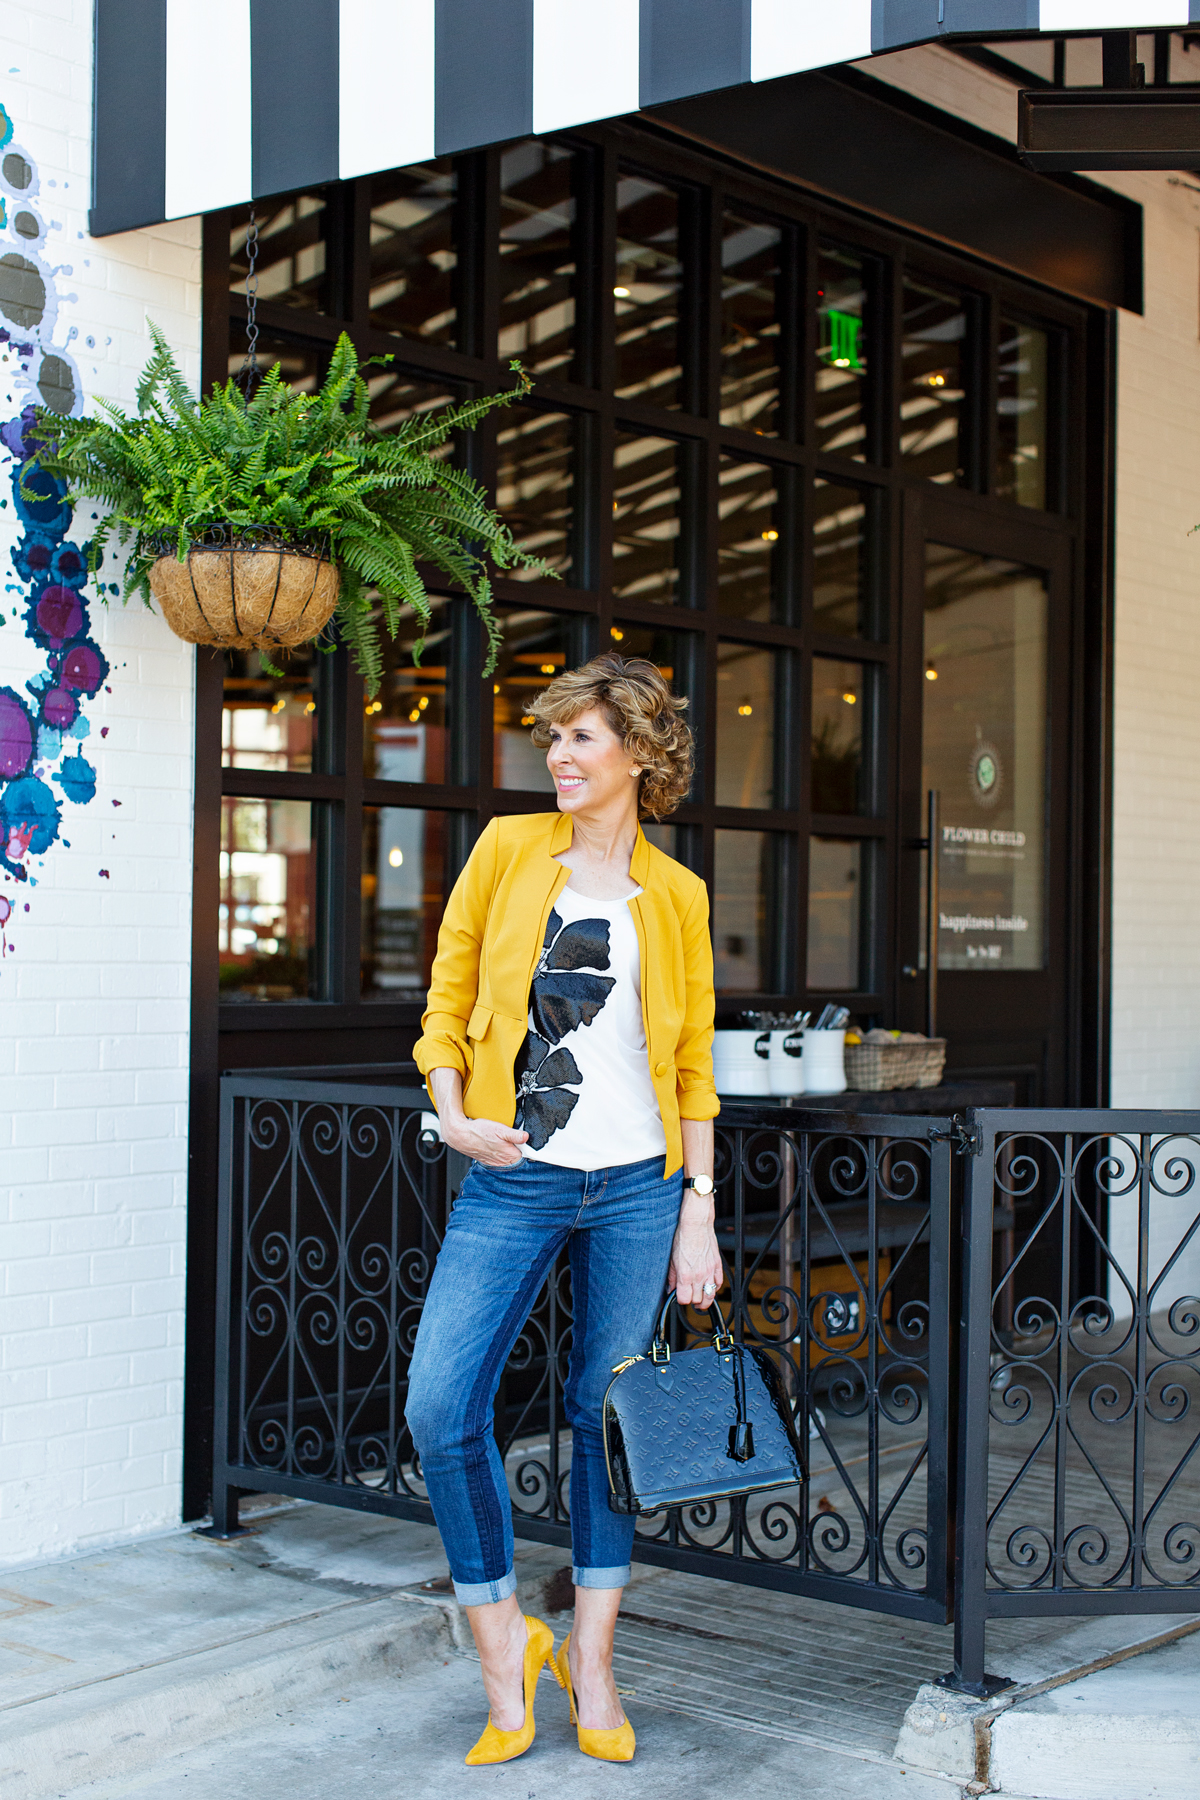 woman with curly hair in yellow blazer holding yellow flowers standing in front of bblack gate